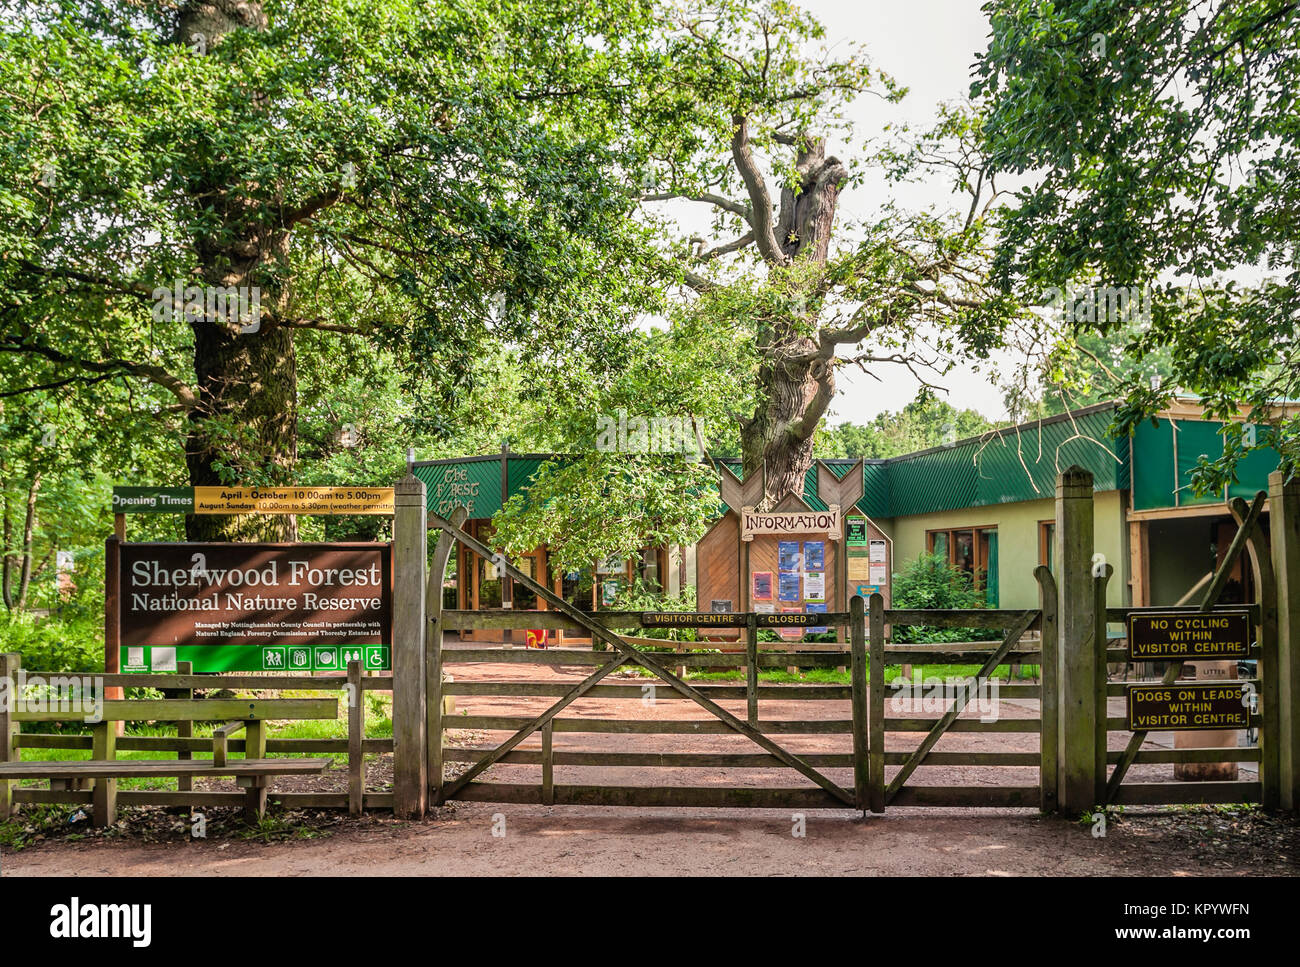 Front gate of the Sherwood Forest National Nature Reserve Visitor Centre in Nottinghamshire, England, UK - Stock Image